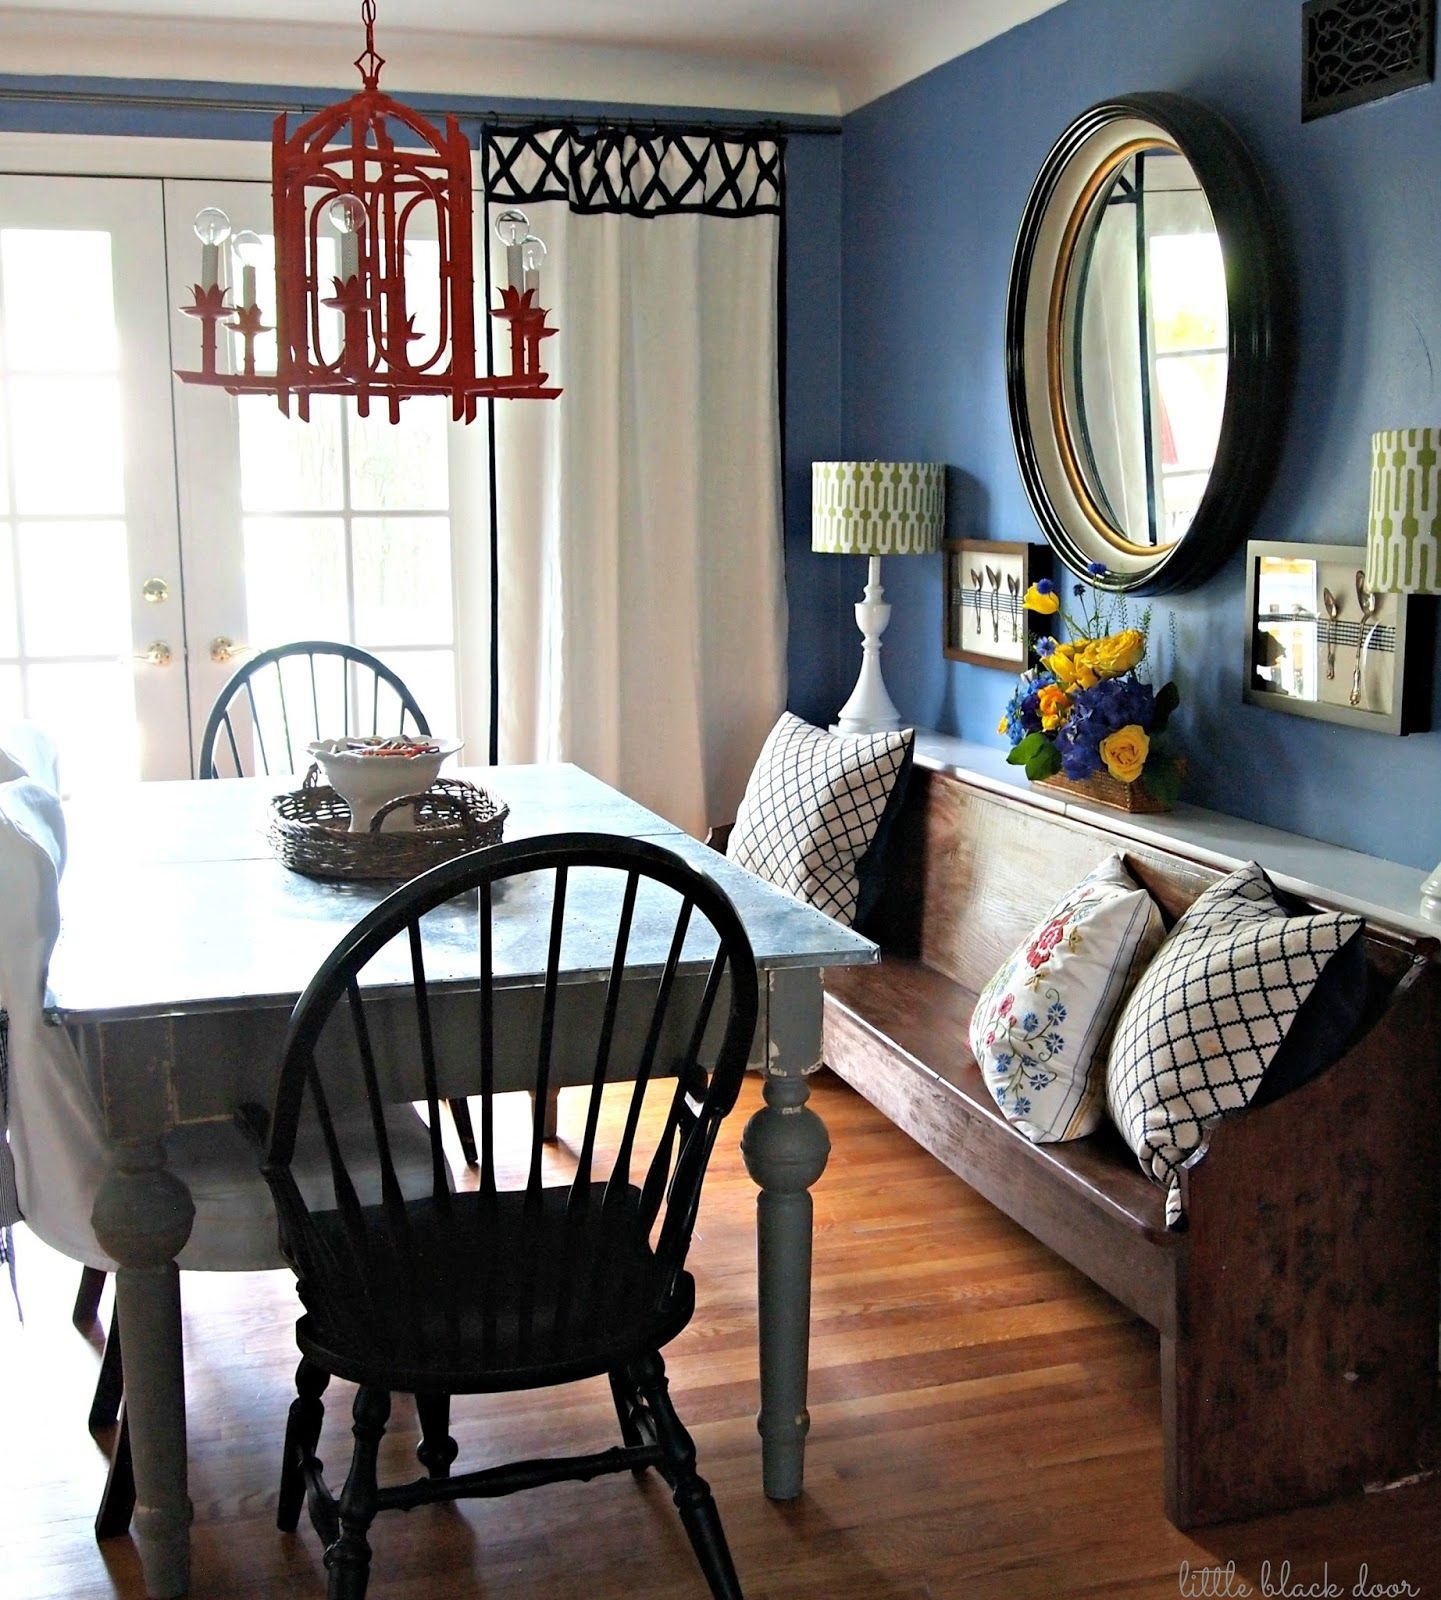 Blog about interior design and DIY projects in St. Louis. | home ...